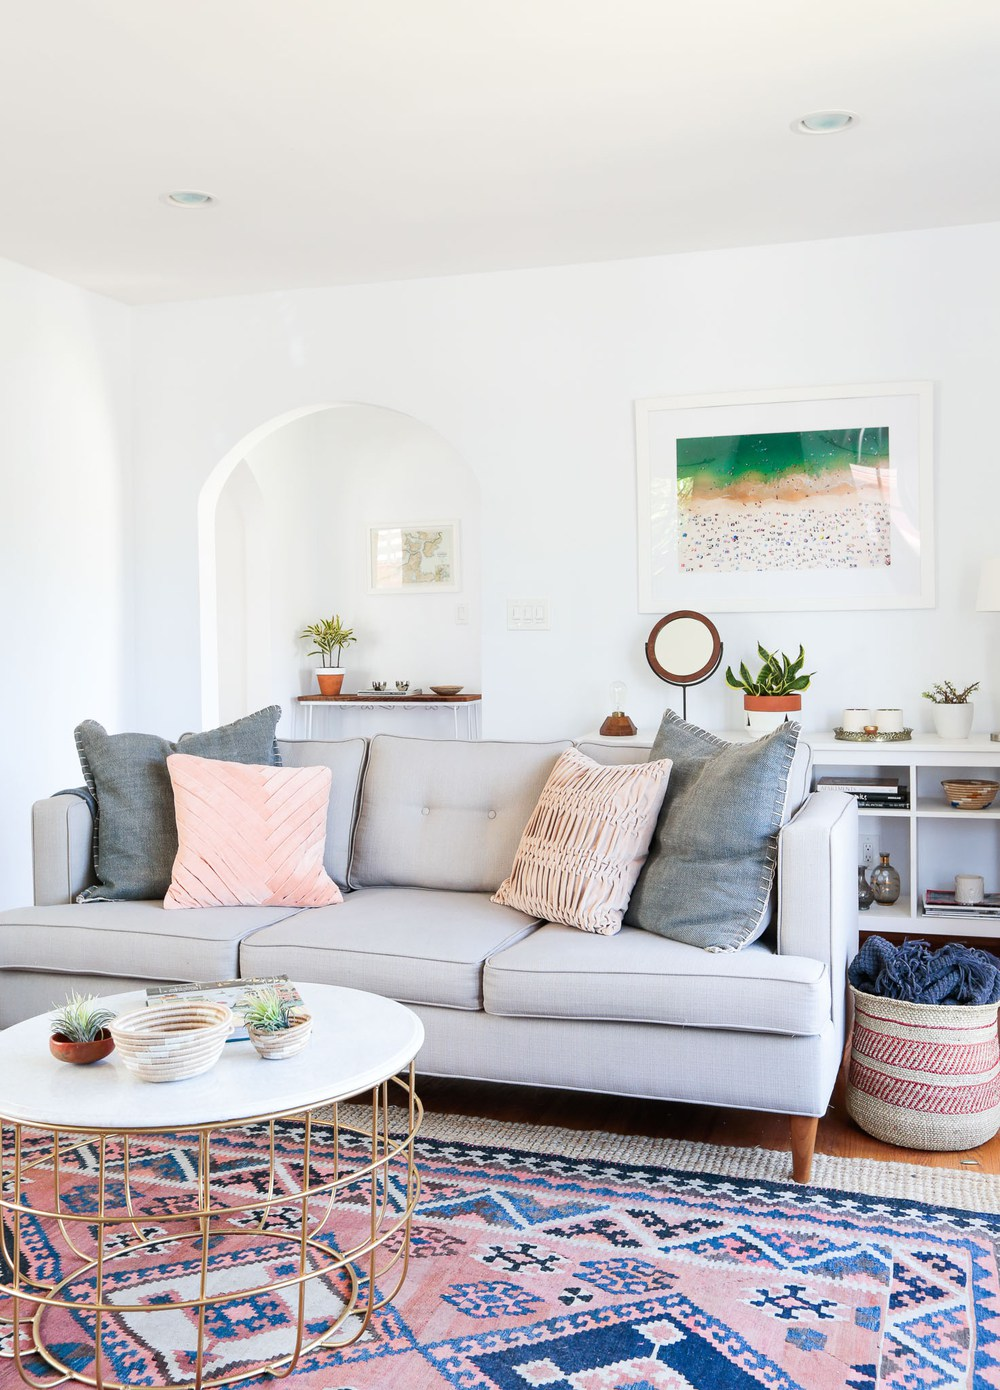 Grey sofa with pillows and pink patterned rug